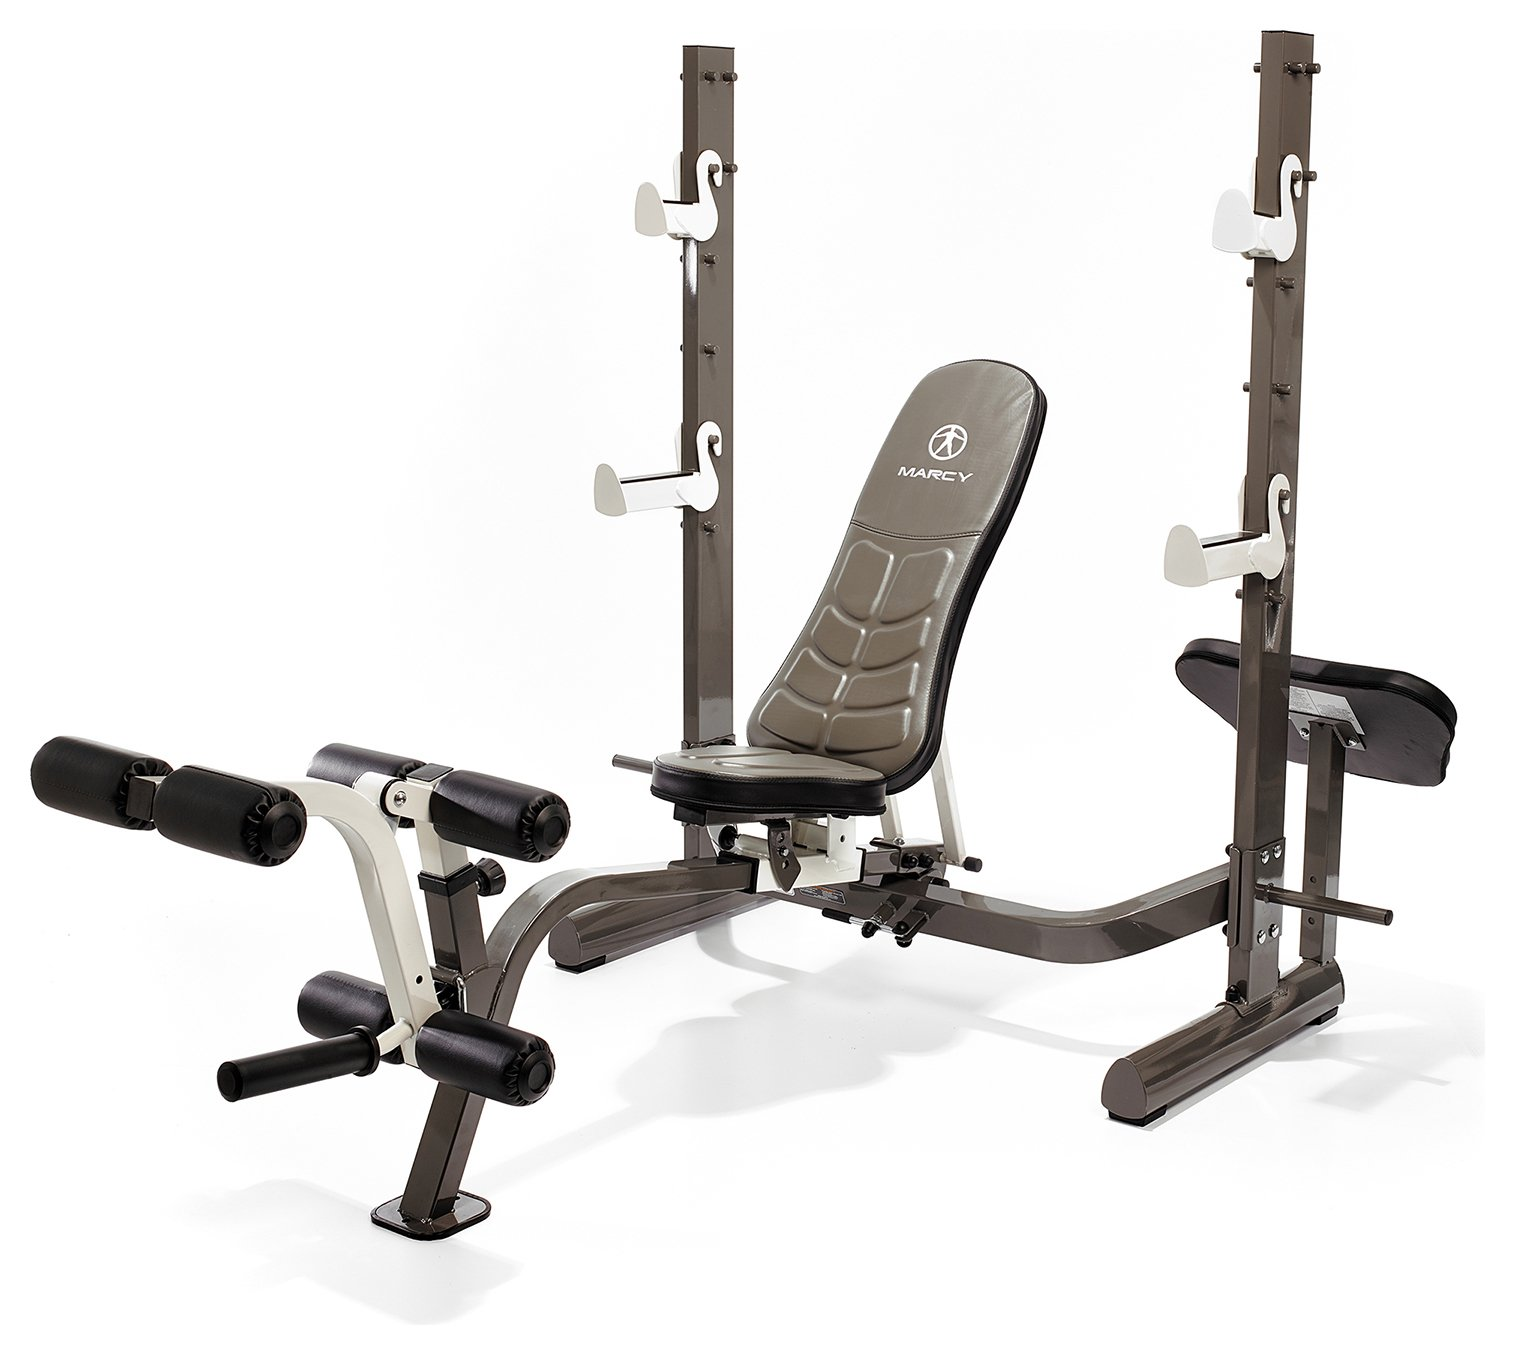 Weight Benches Gym Exercise Benches Argos